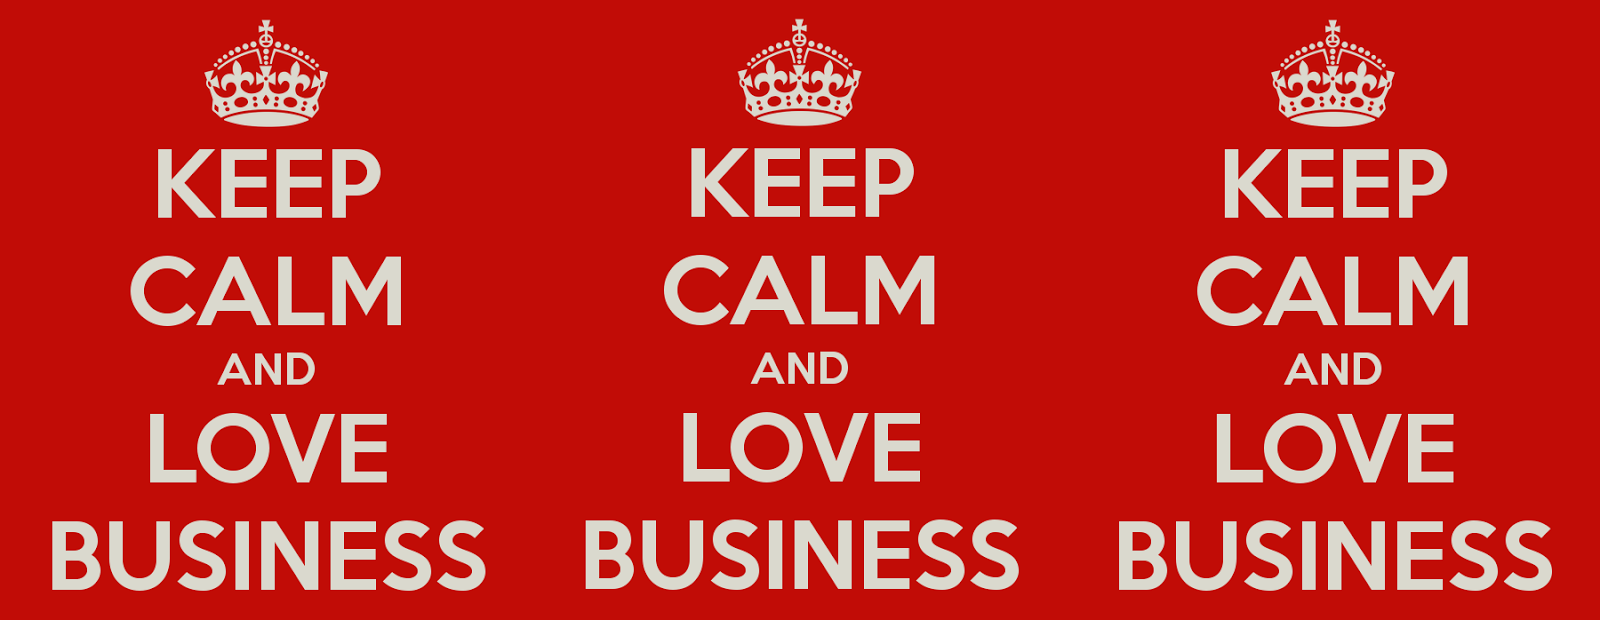 keep calm and love business